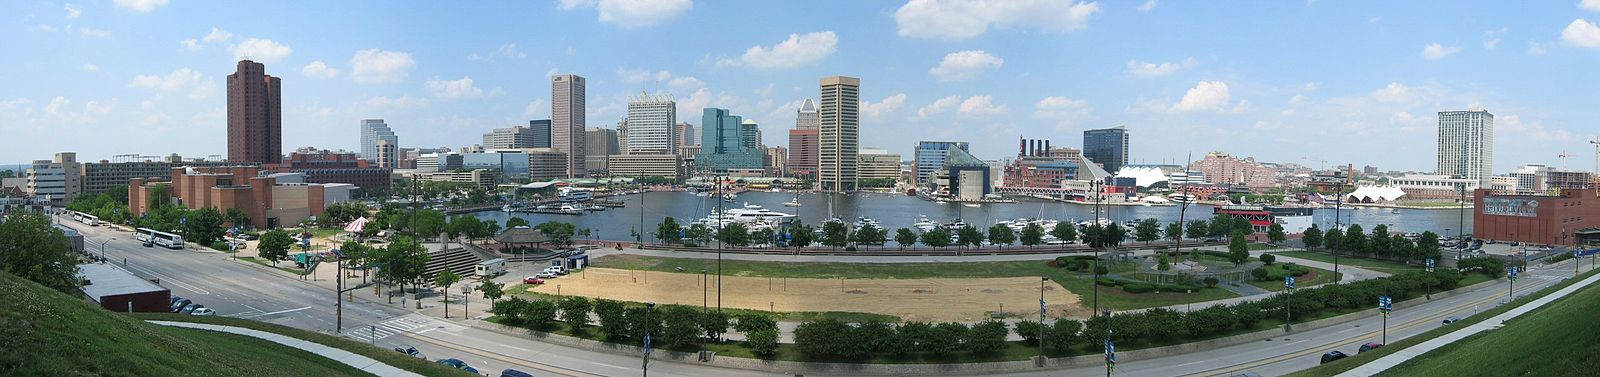 Inner Harbor, Baltimore, surrounded by buildings